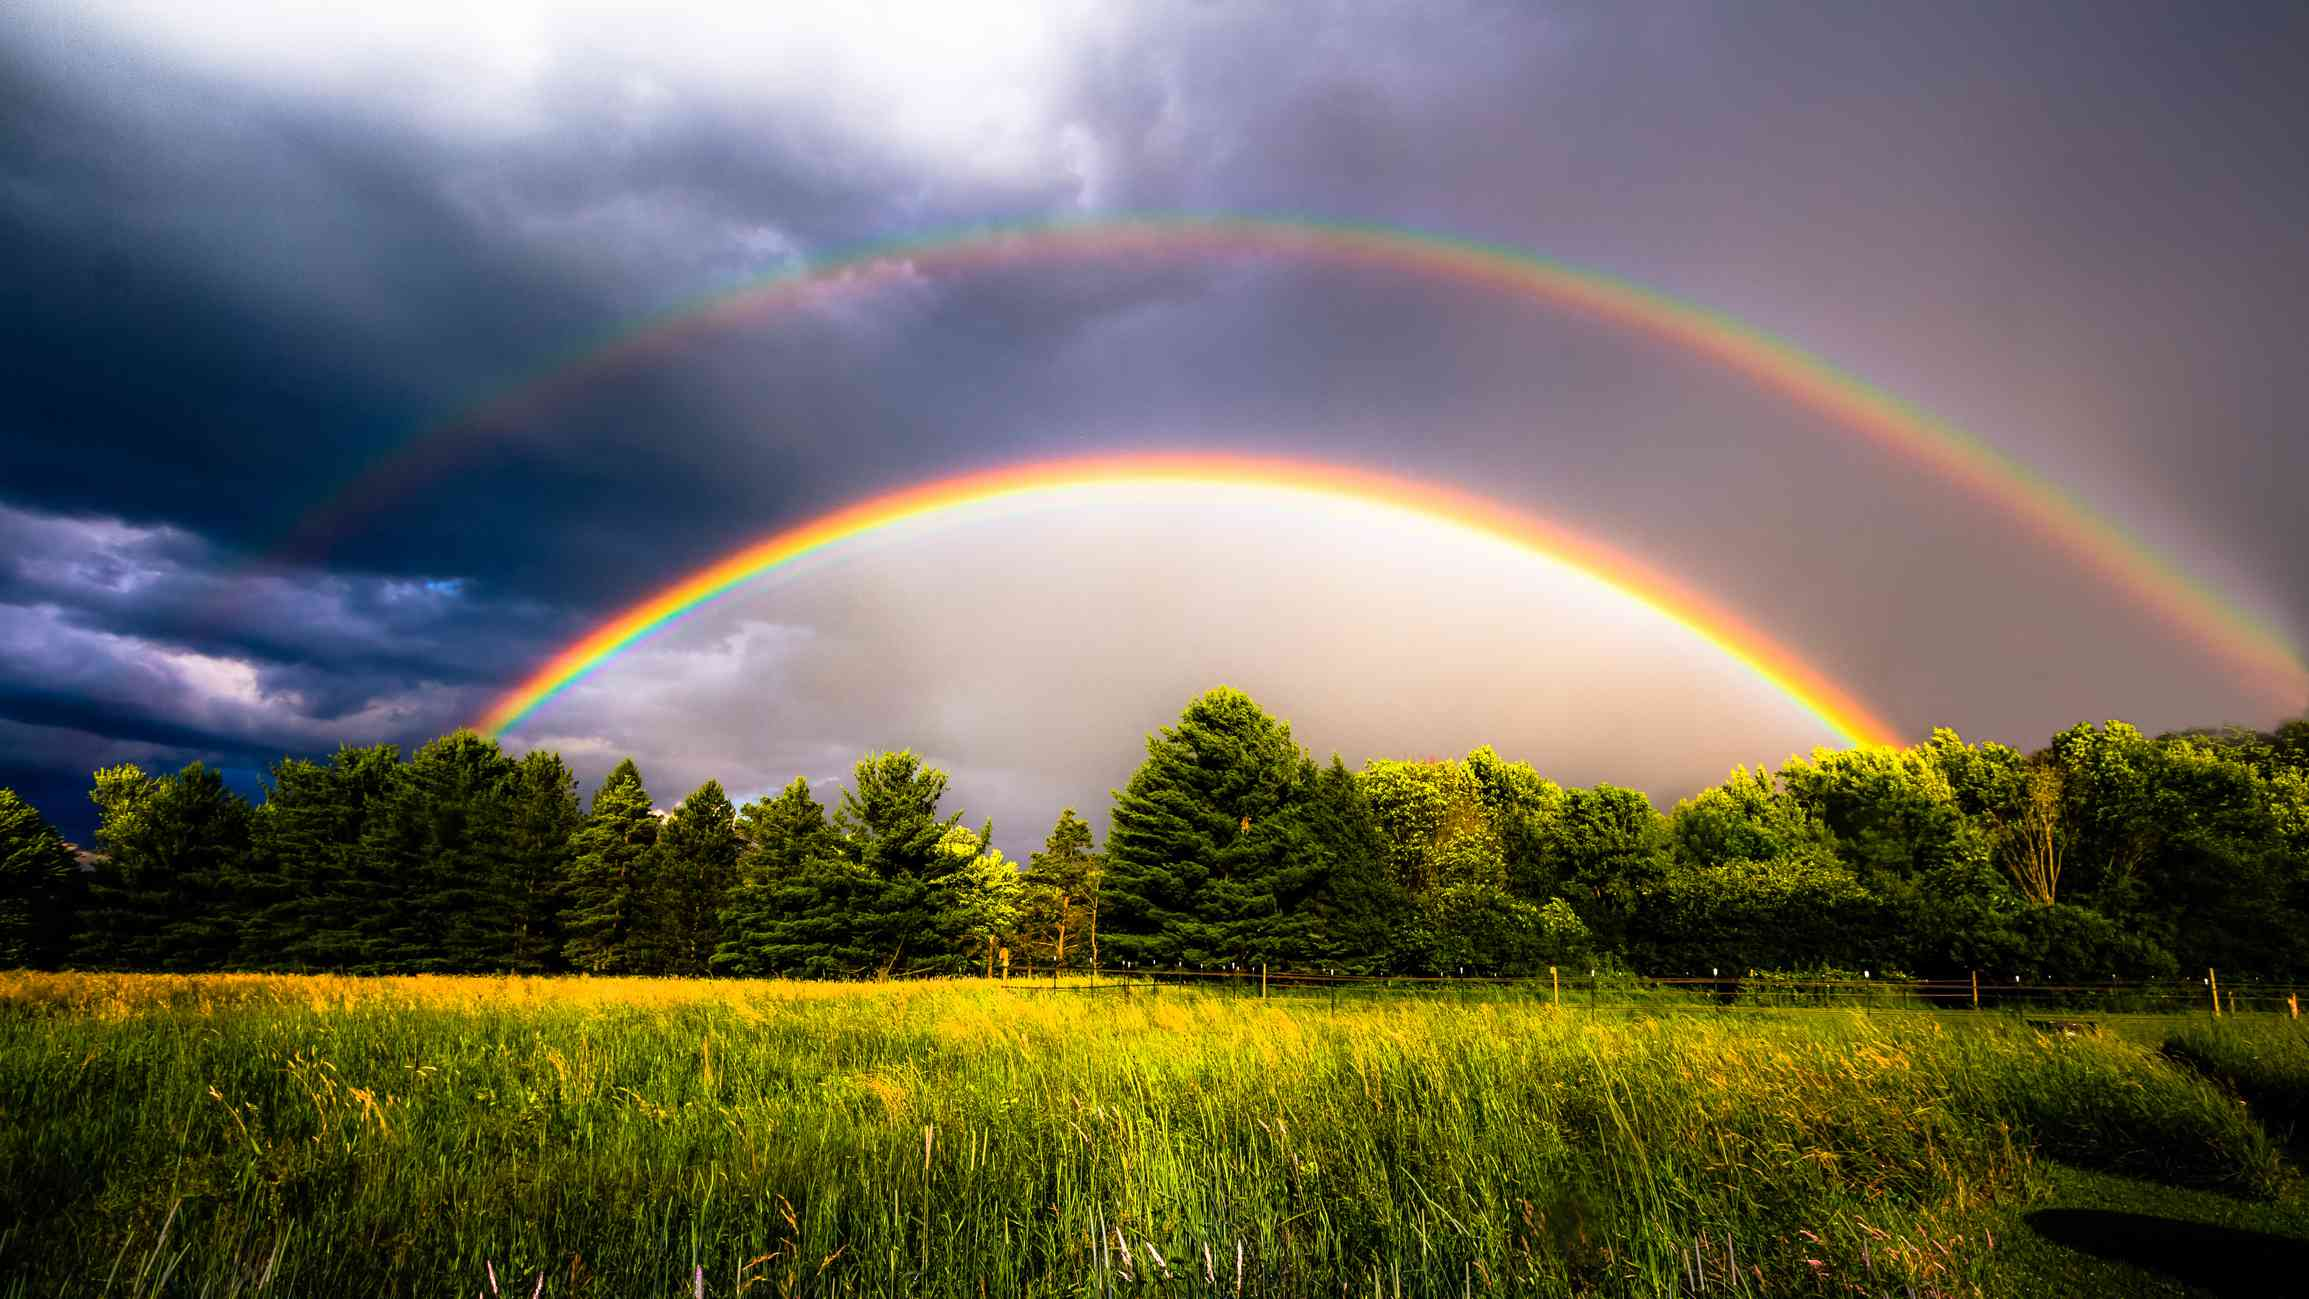 Double rainbow over pasture with evergreen trees and clouds